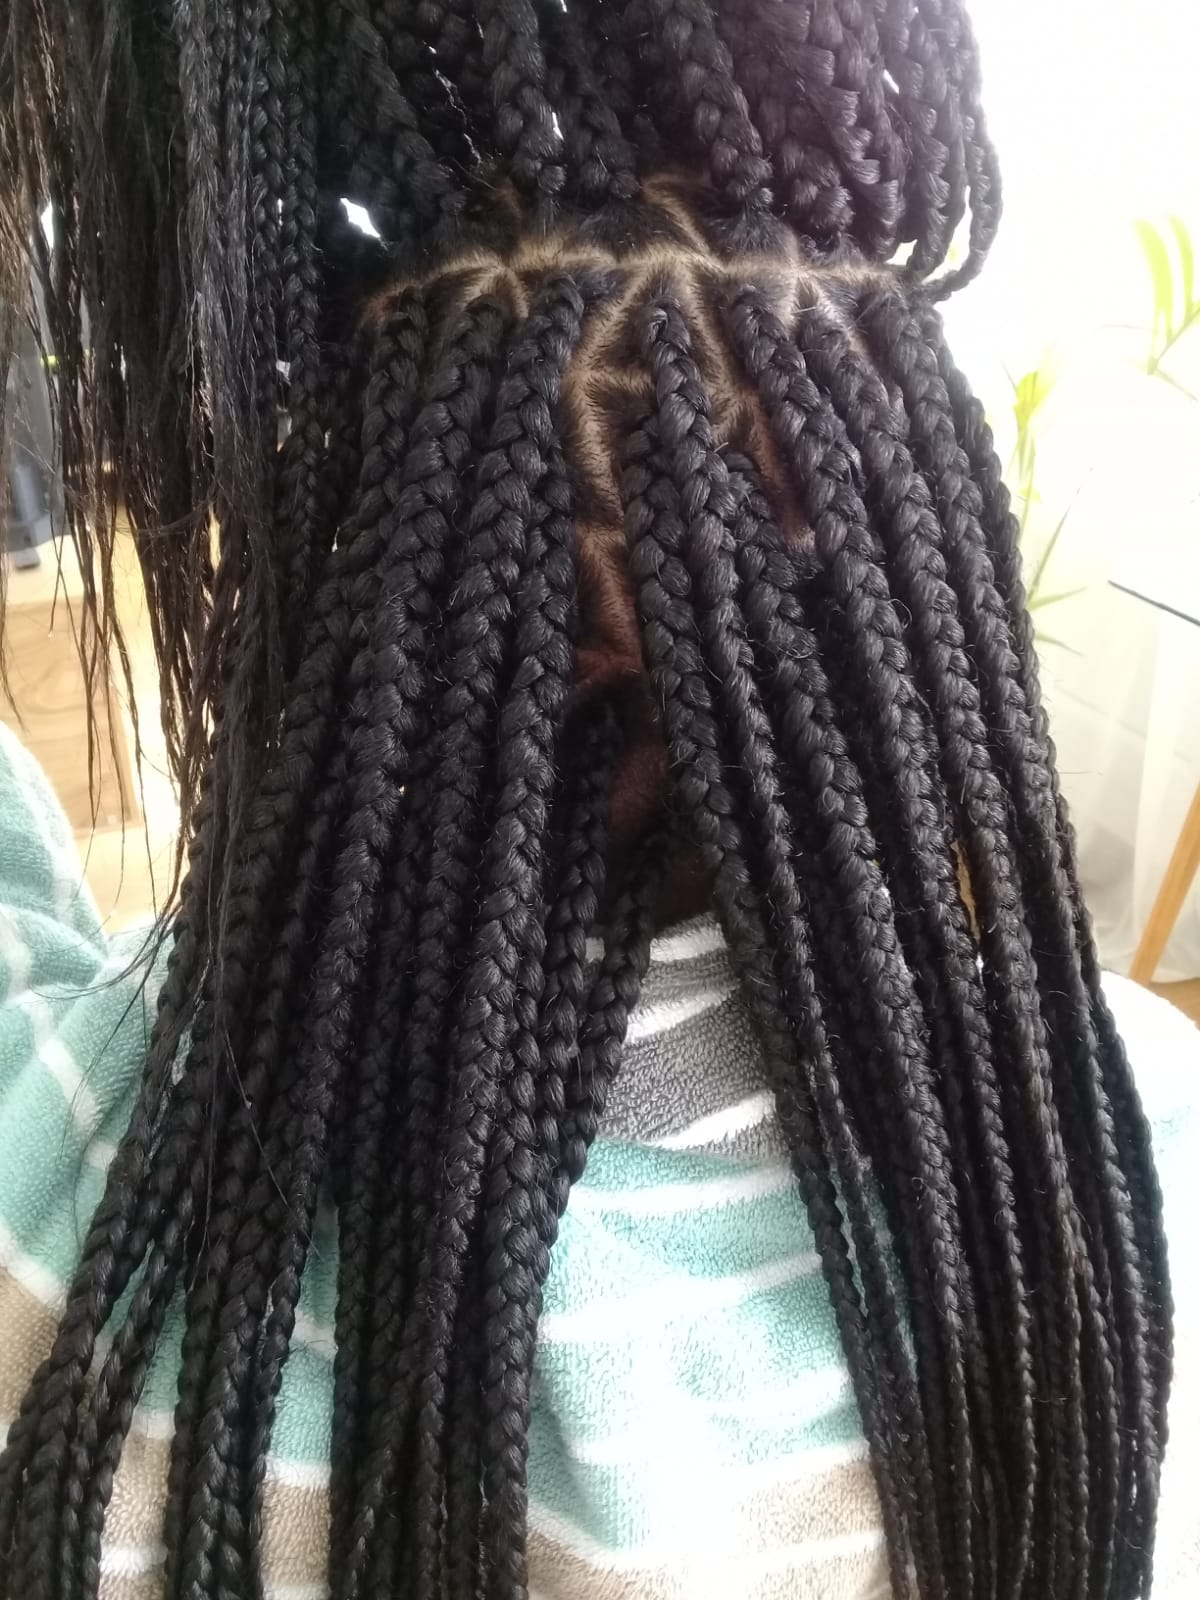 salon de coiffure afro tresse tresses box braids crochet braids vanilles tissages paris 75 77 78 91 92 93 94 95 RRKPGPBJ